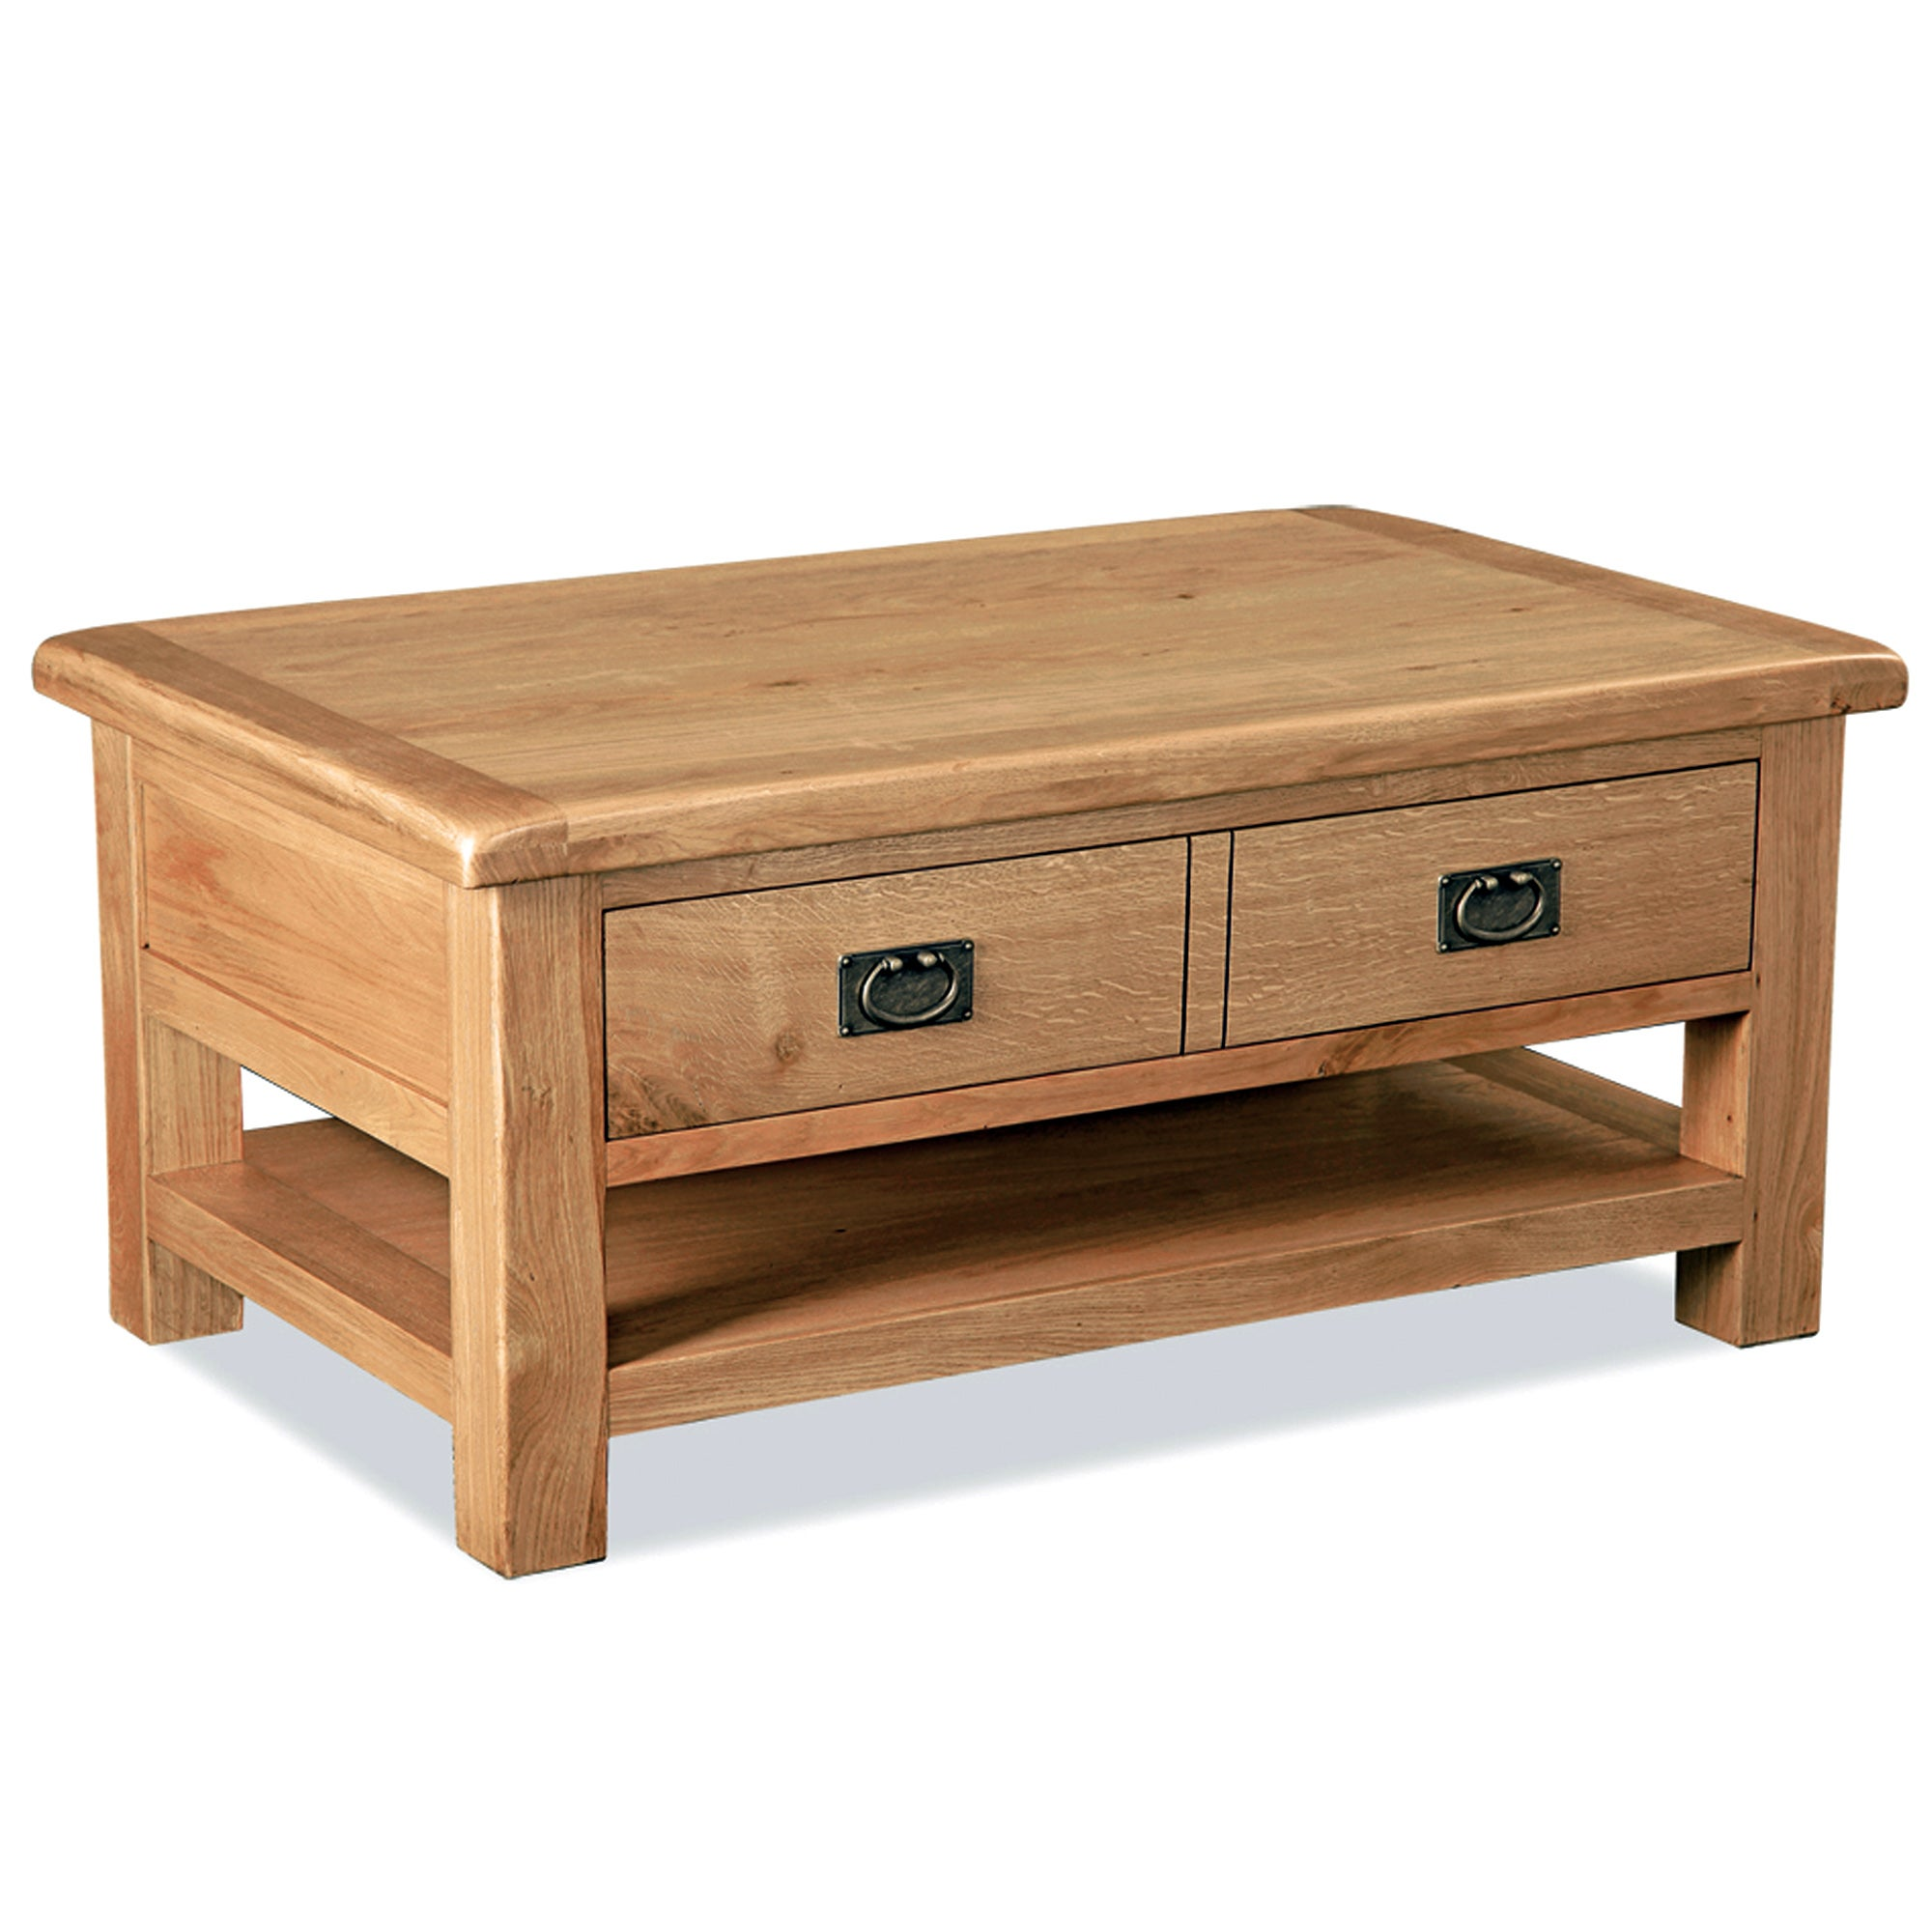 Aylesbury Oak Large Coffee Table with Double Drawer